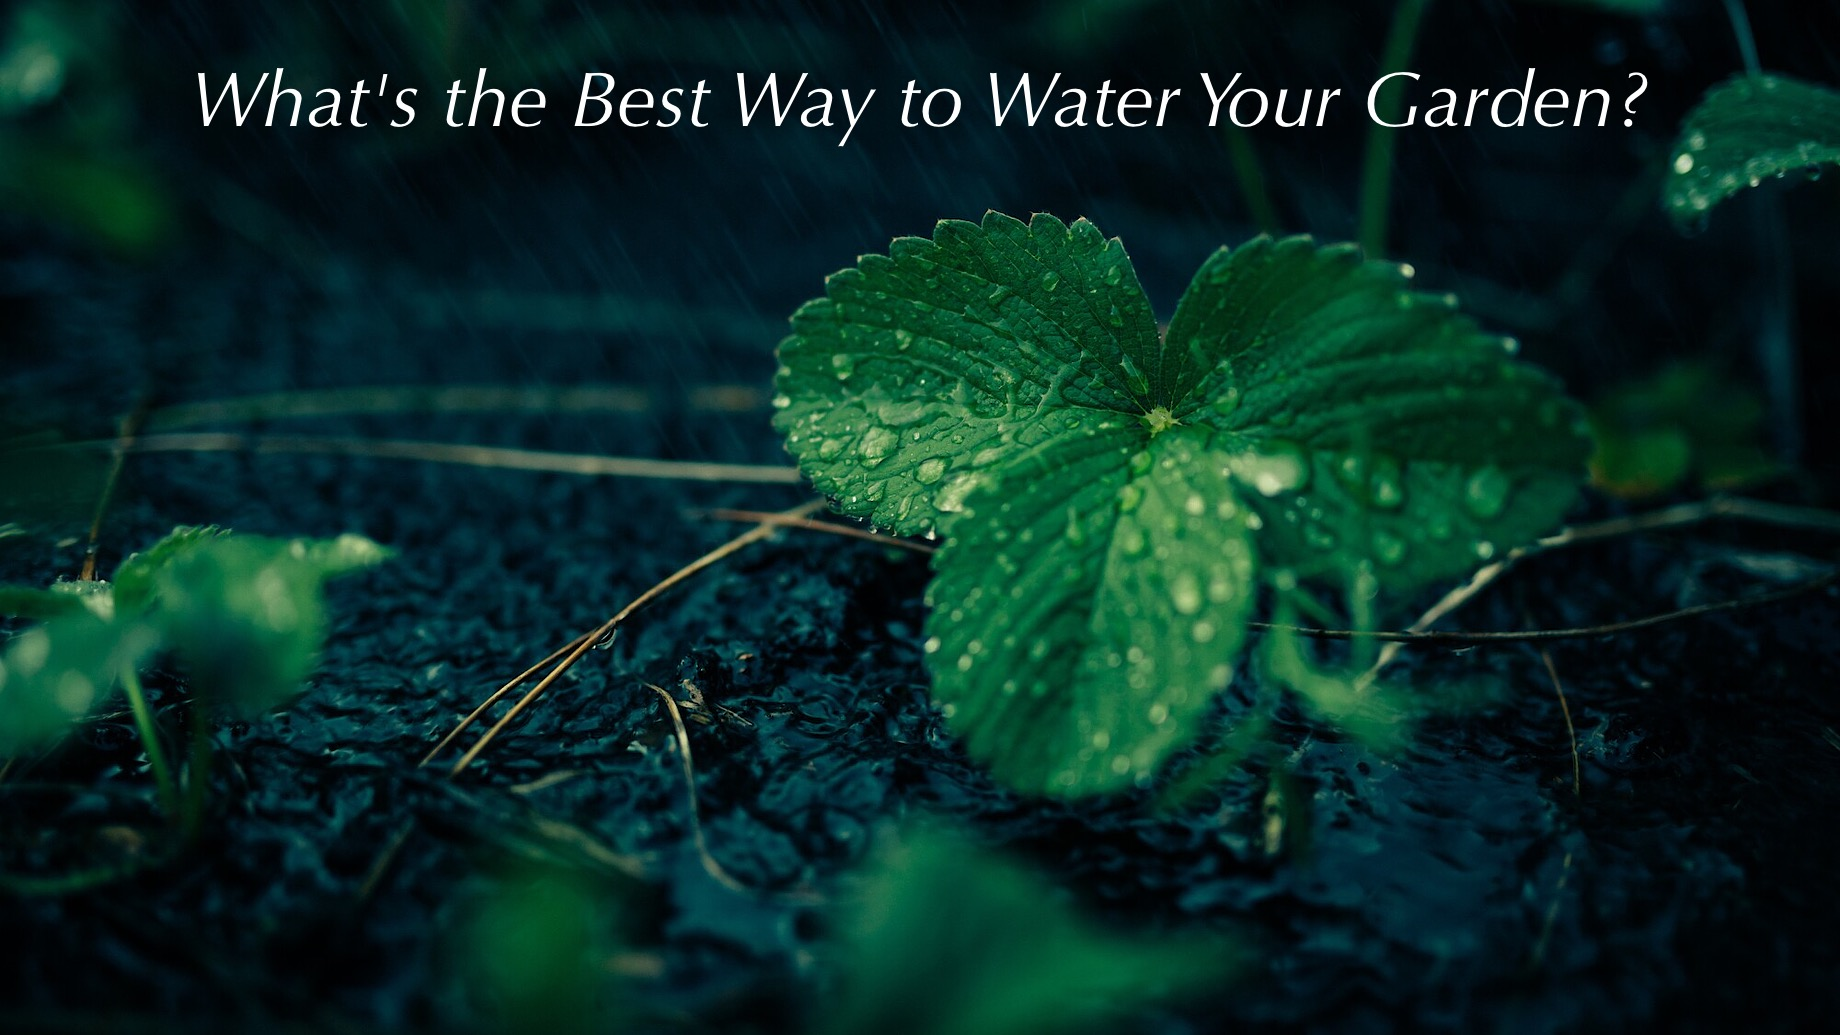 Fighting the Summer Heat - What's the Best Way to Water Your Garden?